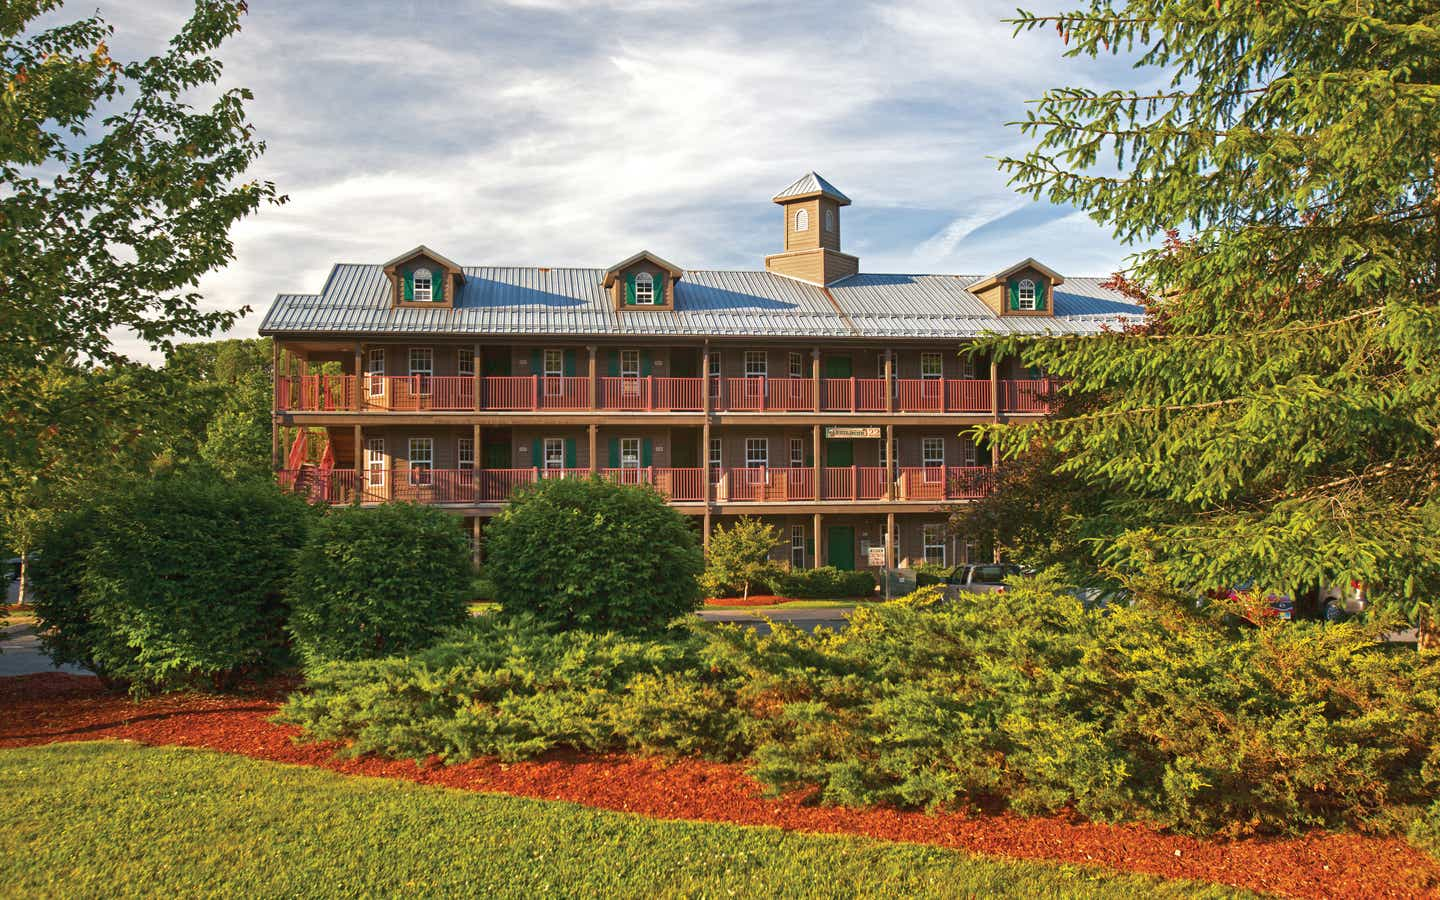 Oak n' Spruce Resort in South Lee, Massachusetts surrounded by well-manicured landscaping.